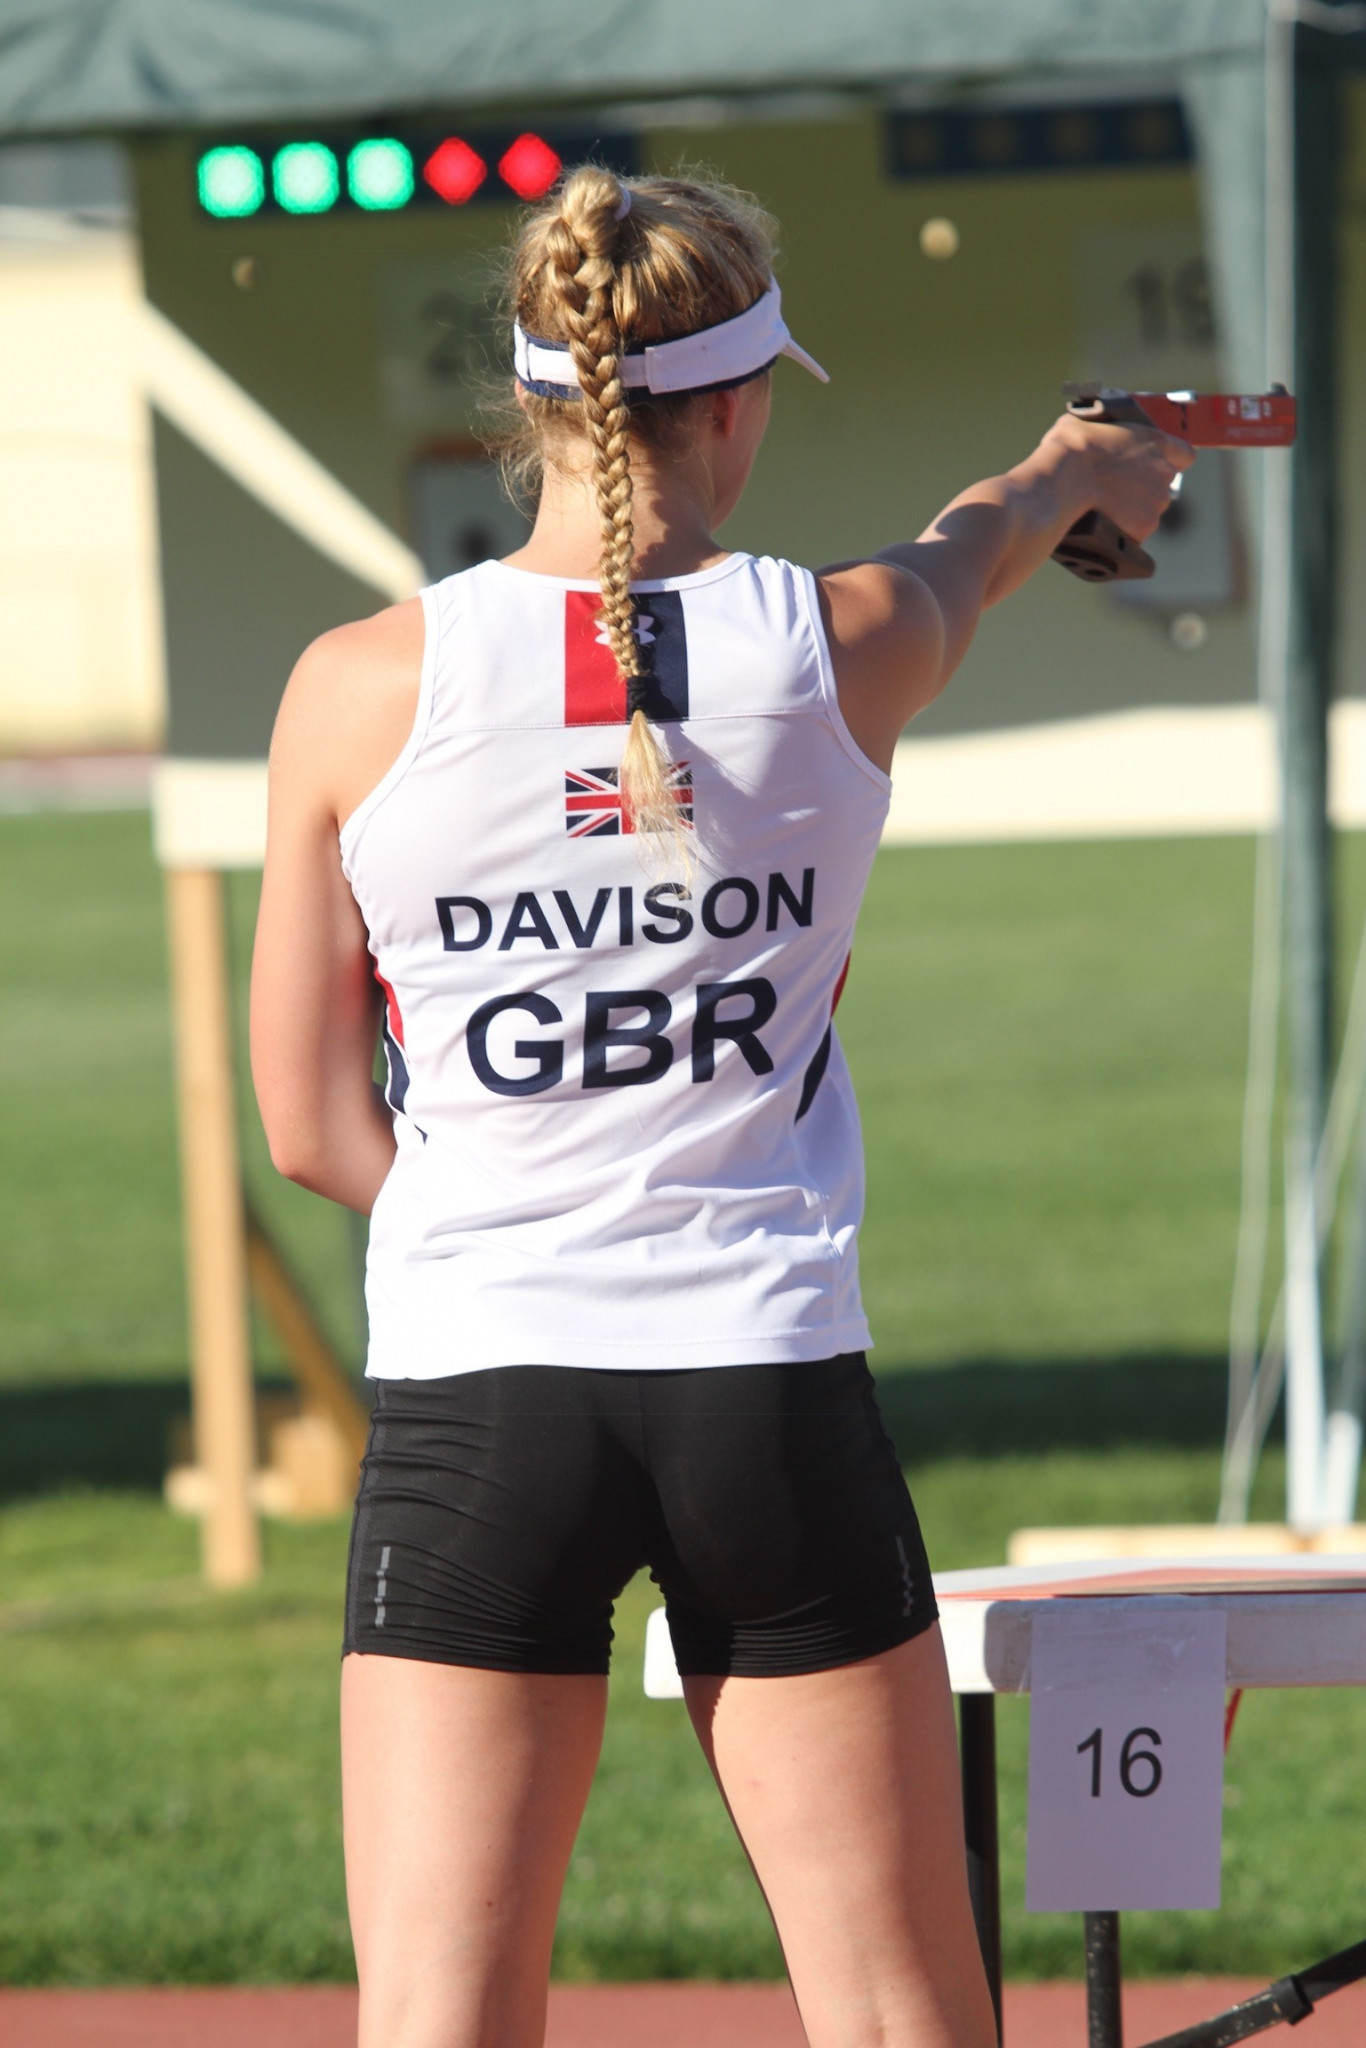 Great Britain's Zoe Davison finished fourth in her best individual performance to date ©Pentathlon GB